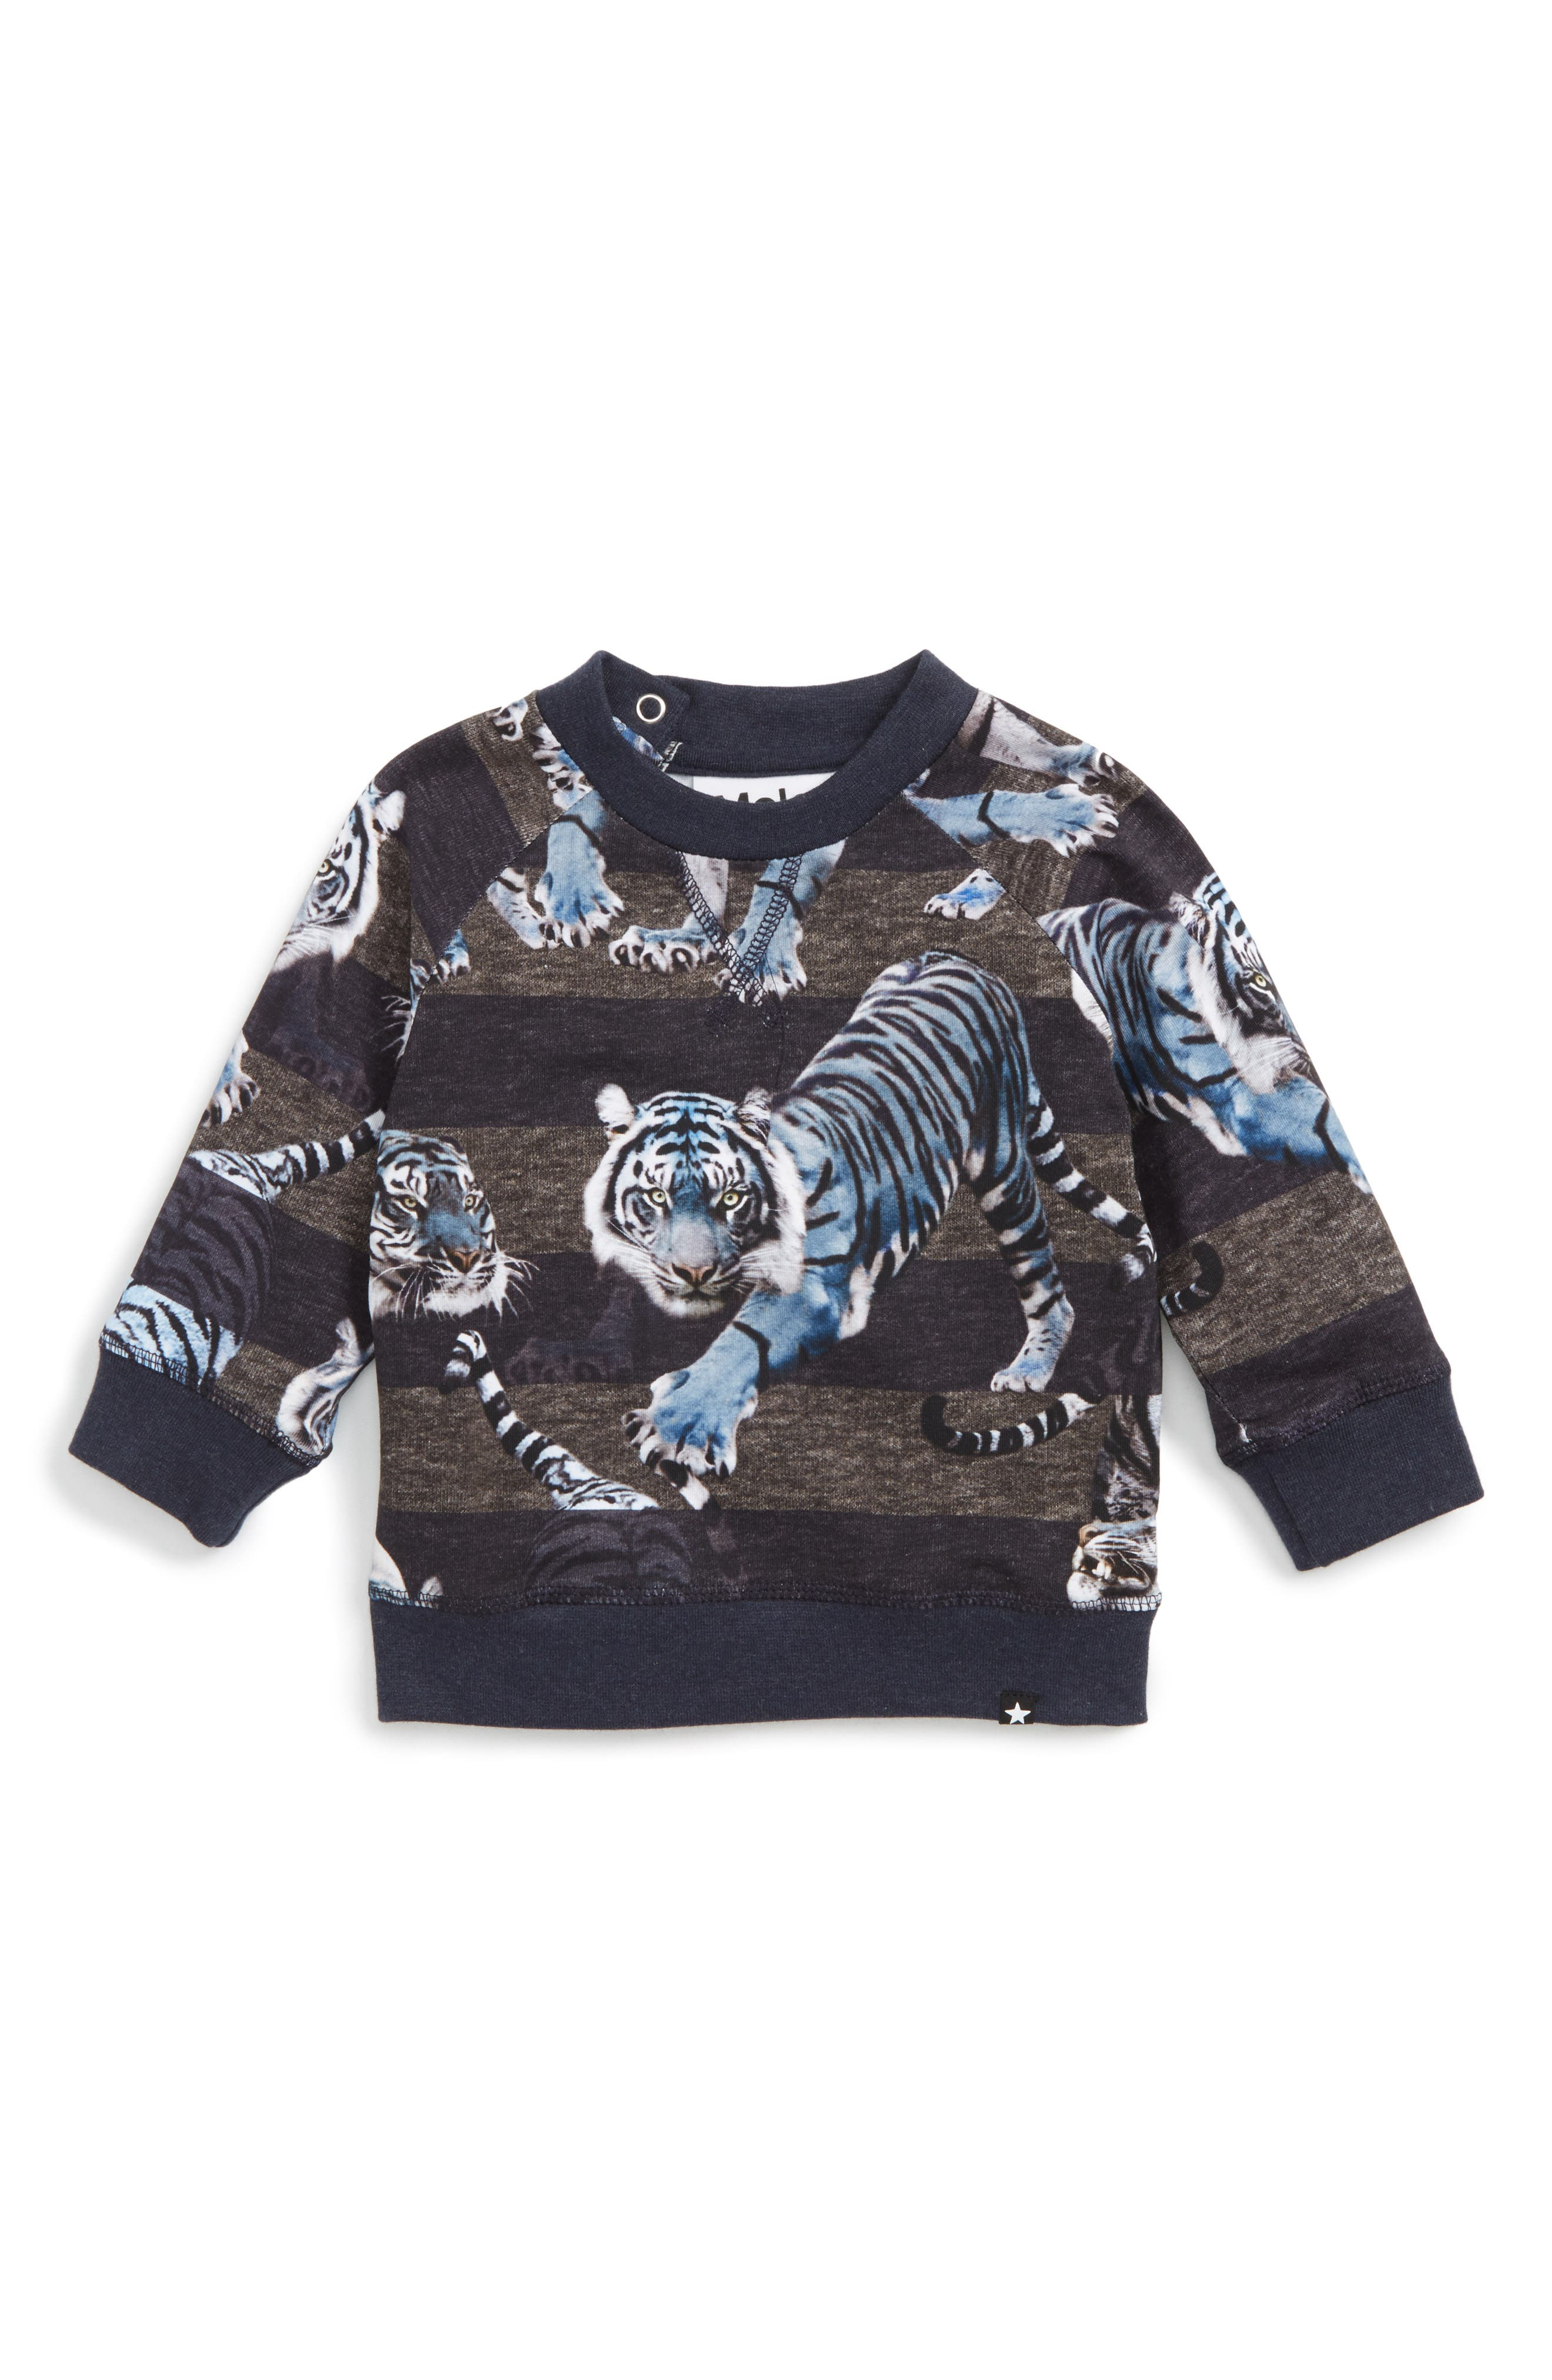 Main Image - Molo Tiger Graphic T-Shirt (Baby Boys)